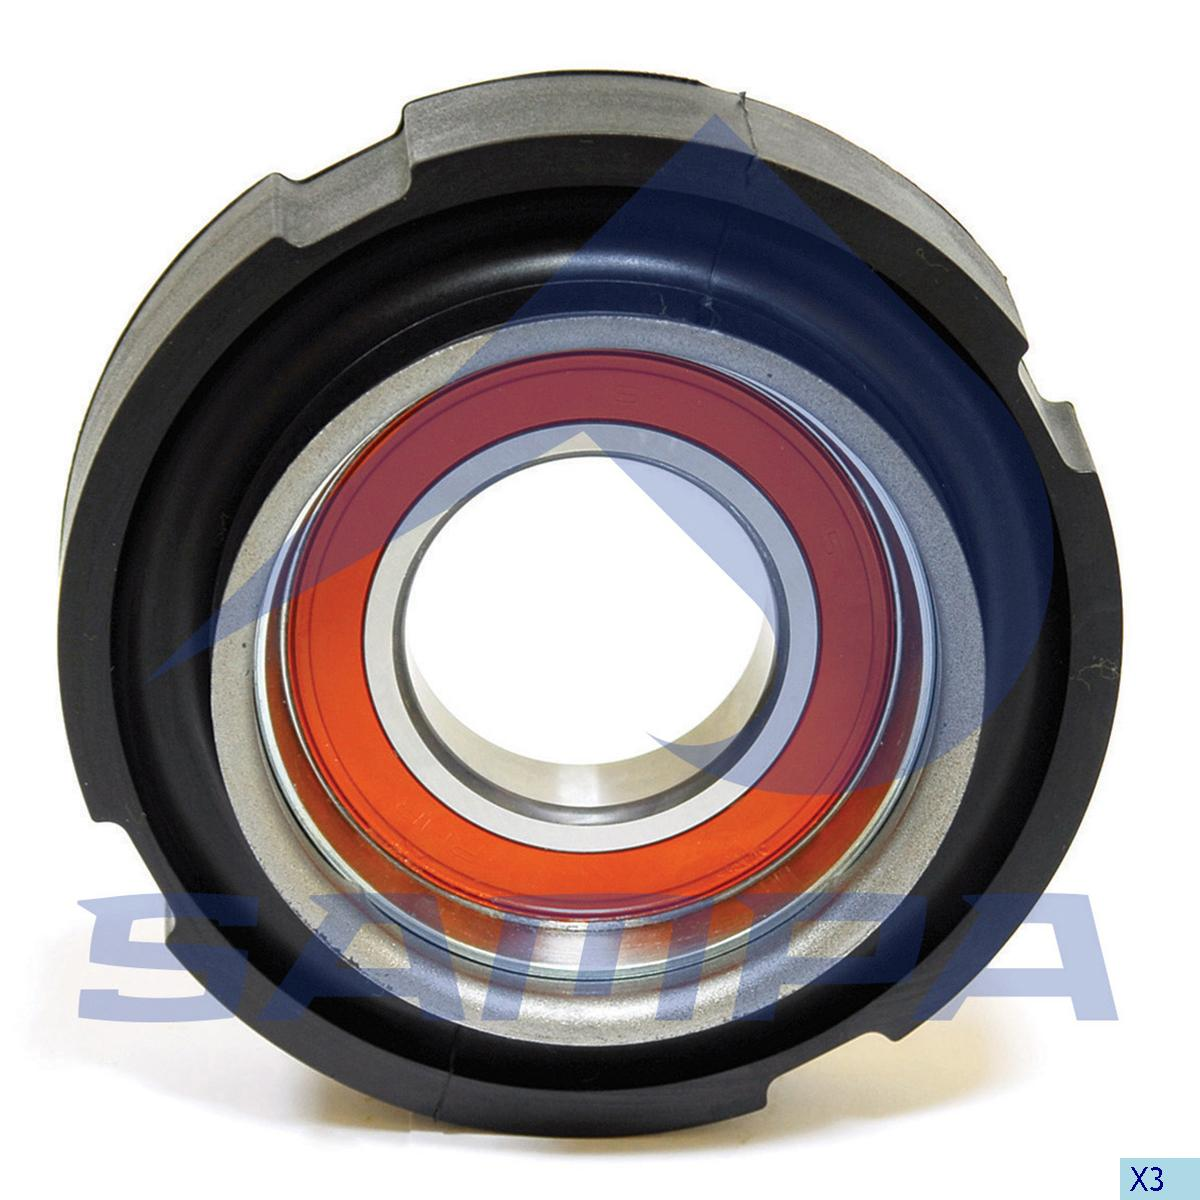 Propeller Shaft Bearing, Scania, Propeller Shaft